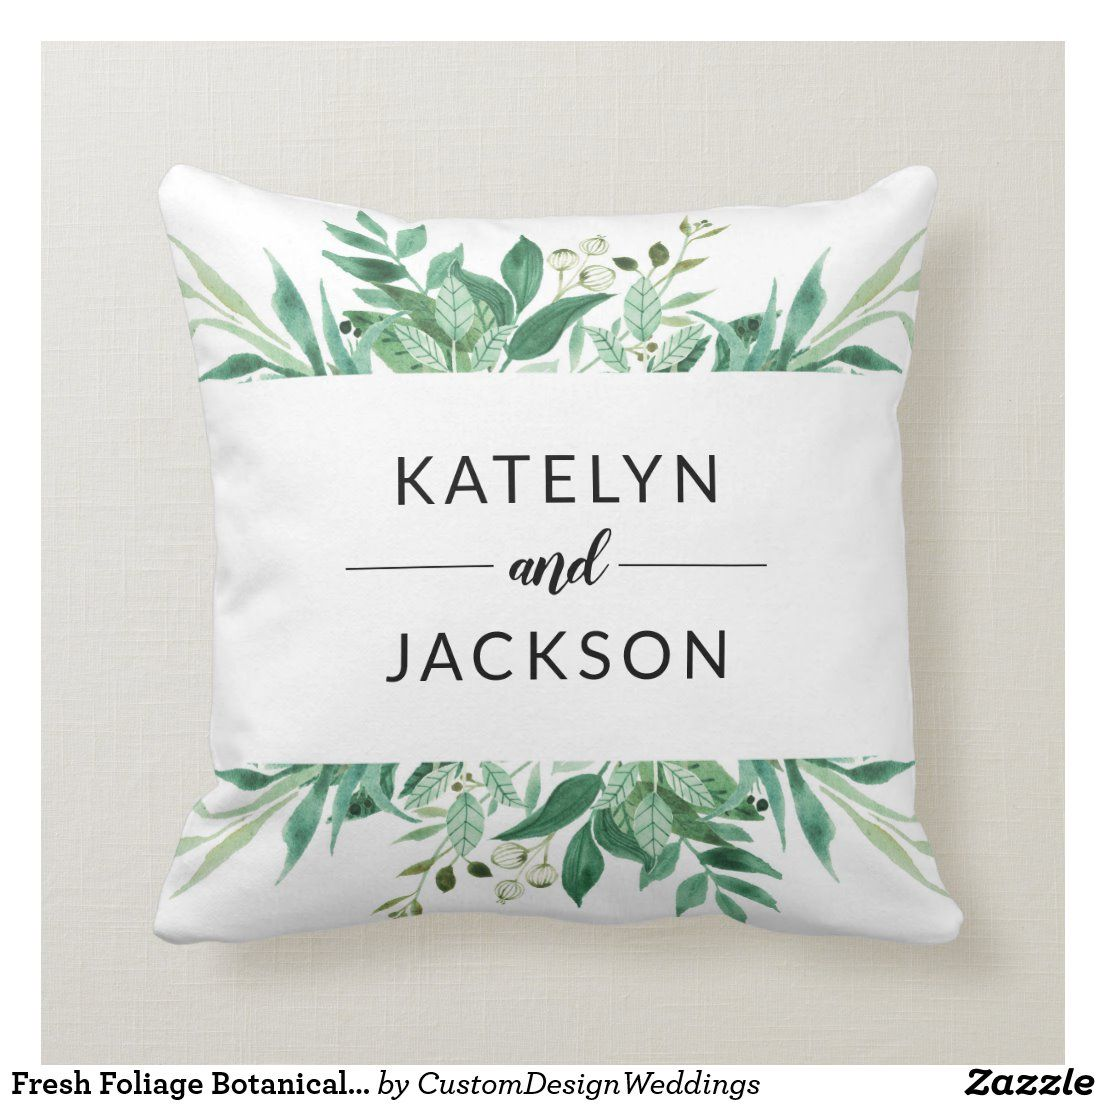 Fresh Foliage Botanical Bride Groom Monogram Throw Pillow Zazzle Com Monogram Throw Pillow Ring Bearer Wedding Wedding Ceremony Ring Bearer